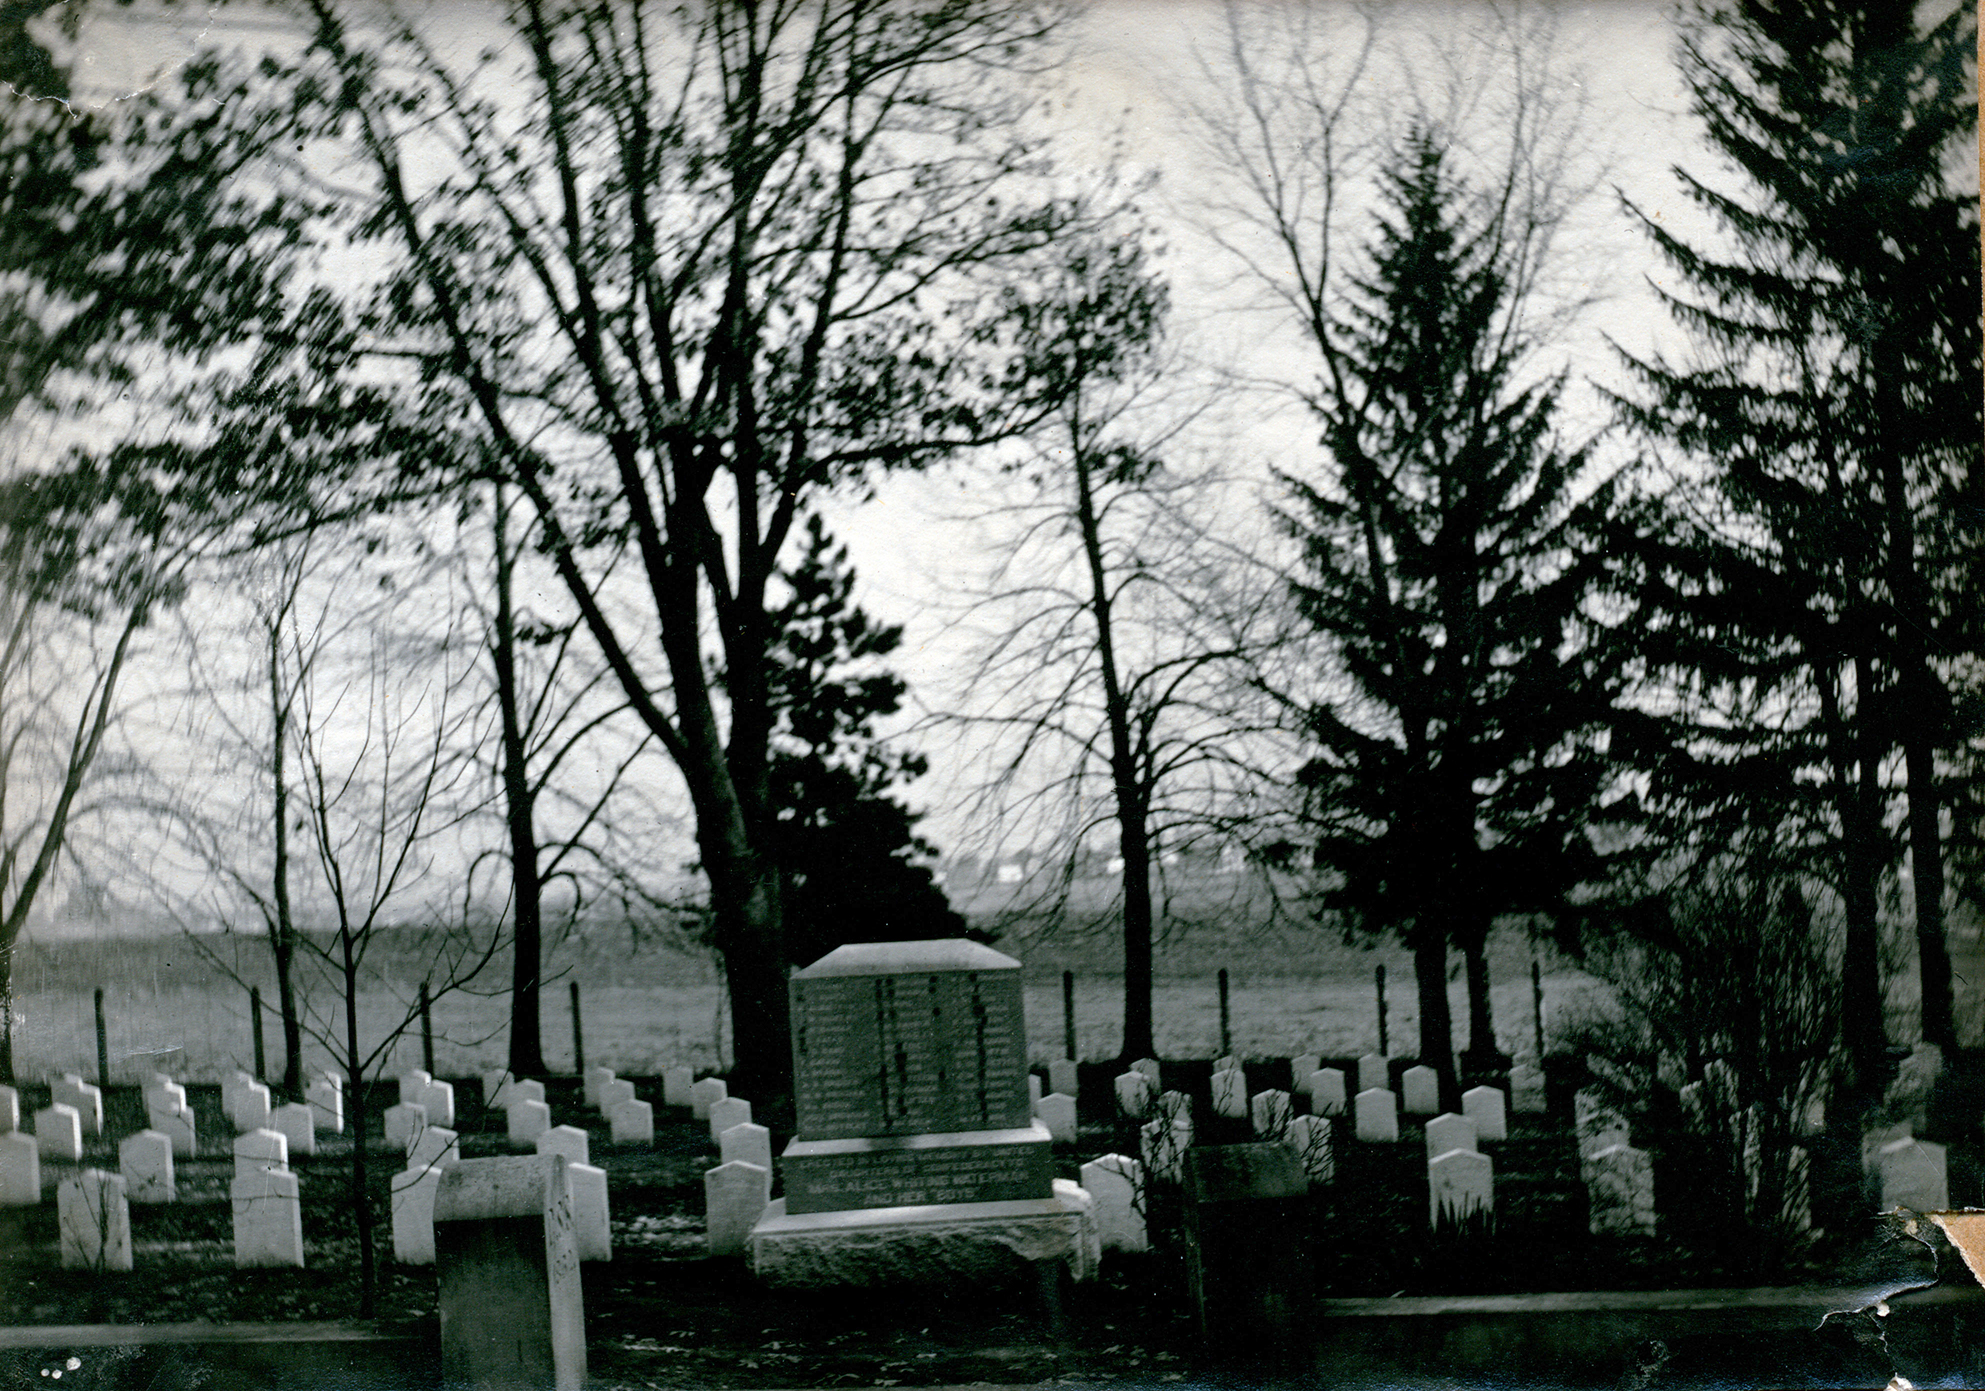 Cabinet card photograph, taken 1896, of the Confederate Rest in Madison, Wisconsin. The photograph features the section of graves at Forest Hill Cemetery in Madison, Wisconsin, reserved for the 136 Confederate soldiers who are buried there, and Alice Whiting Waterman.